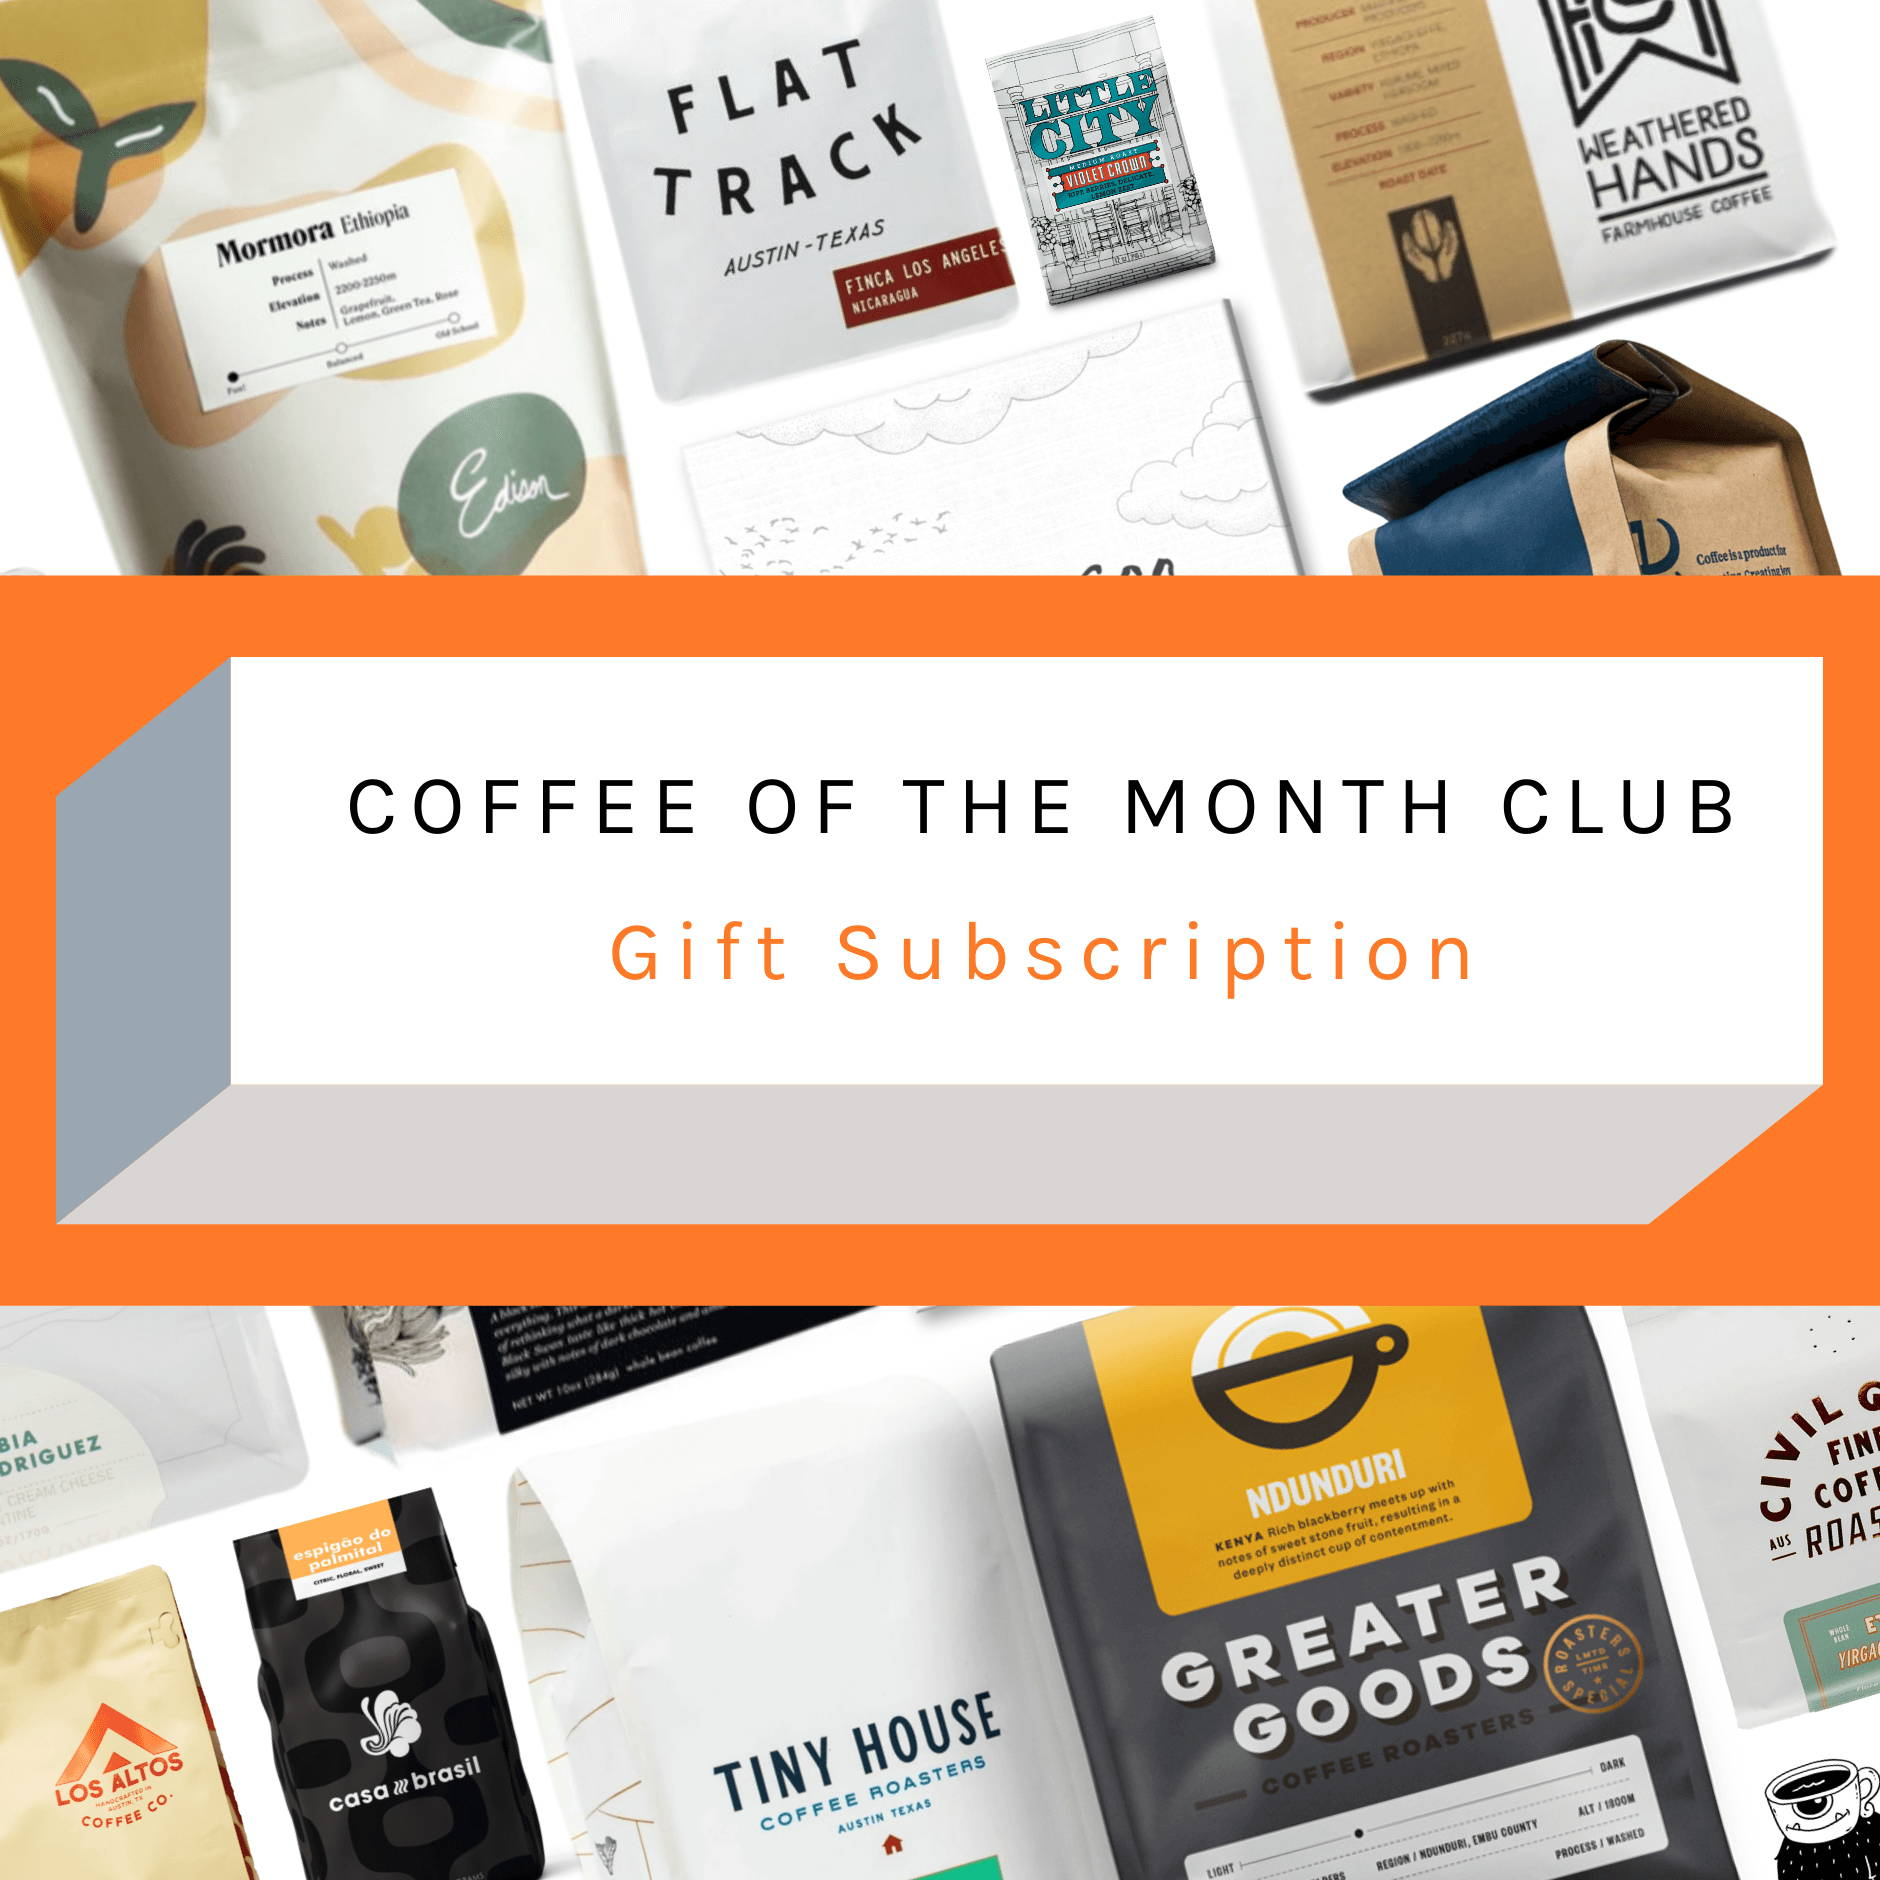 Creature Coffee Co - Present - Gift - Coffee Gift - Best Gift - Texas Coffee Roasters - Texas Coffee - creature coffee subscription - texas coffee subscription - buy coffee beans - buy gift coffee subscription - coffee of the month - buy coffee - buy beans - fresh coffee beans - specialty coffee in texas